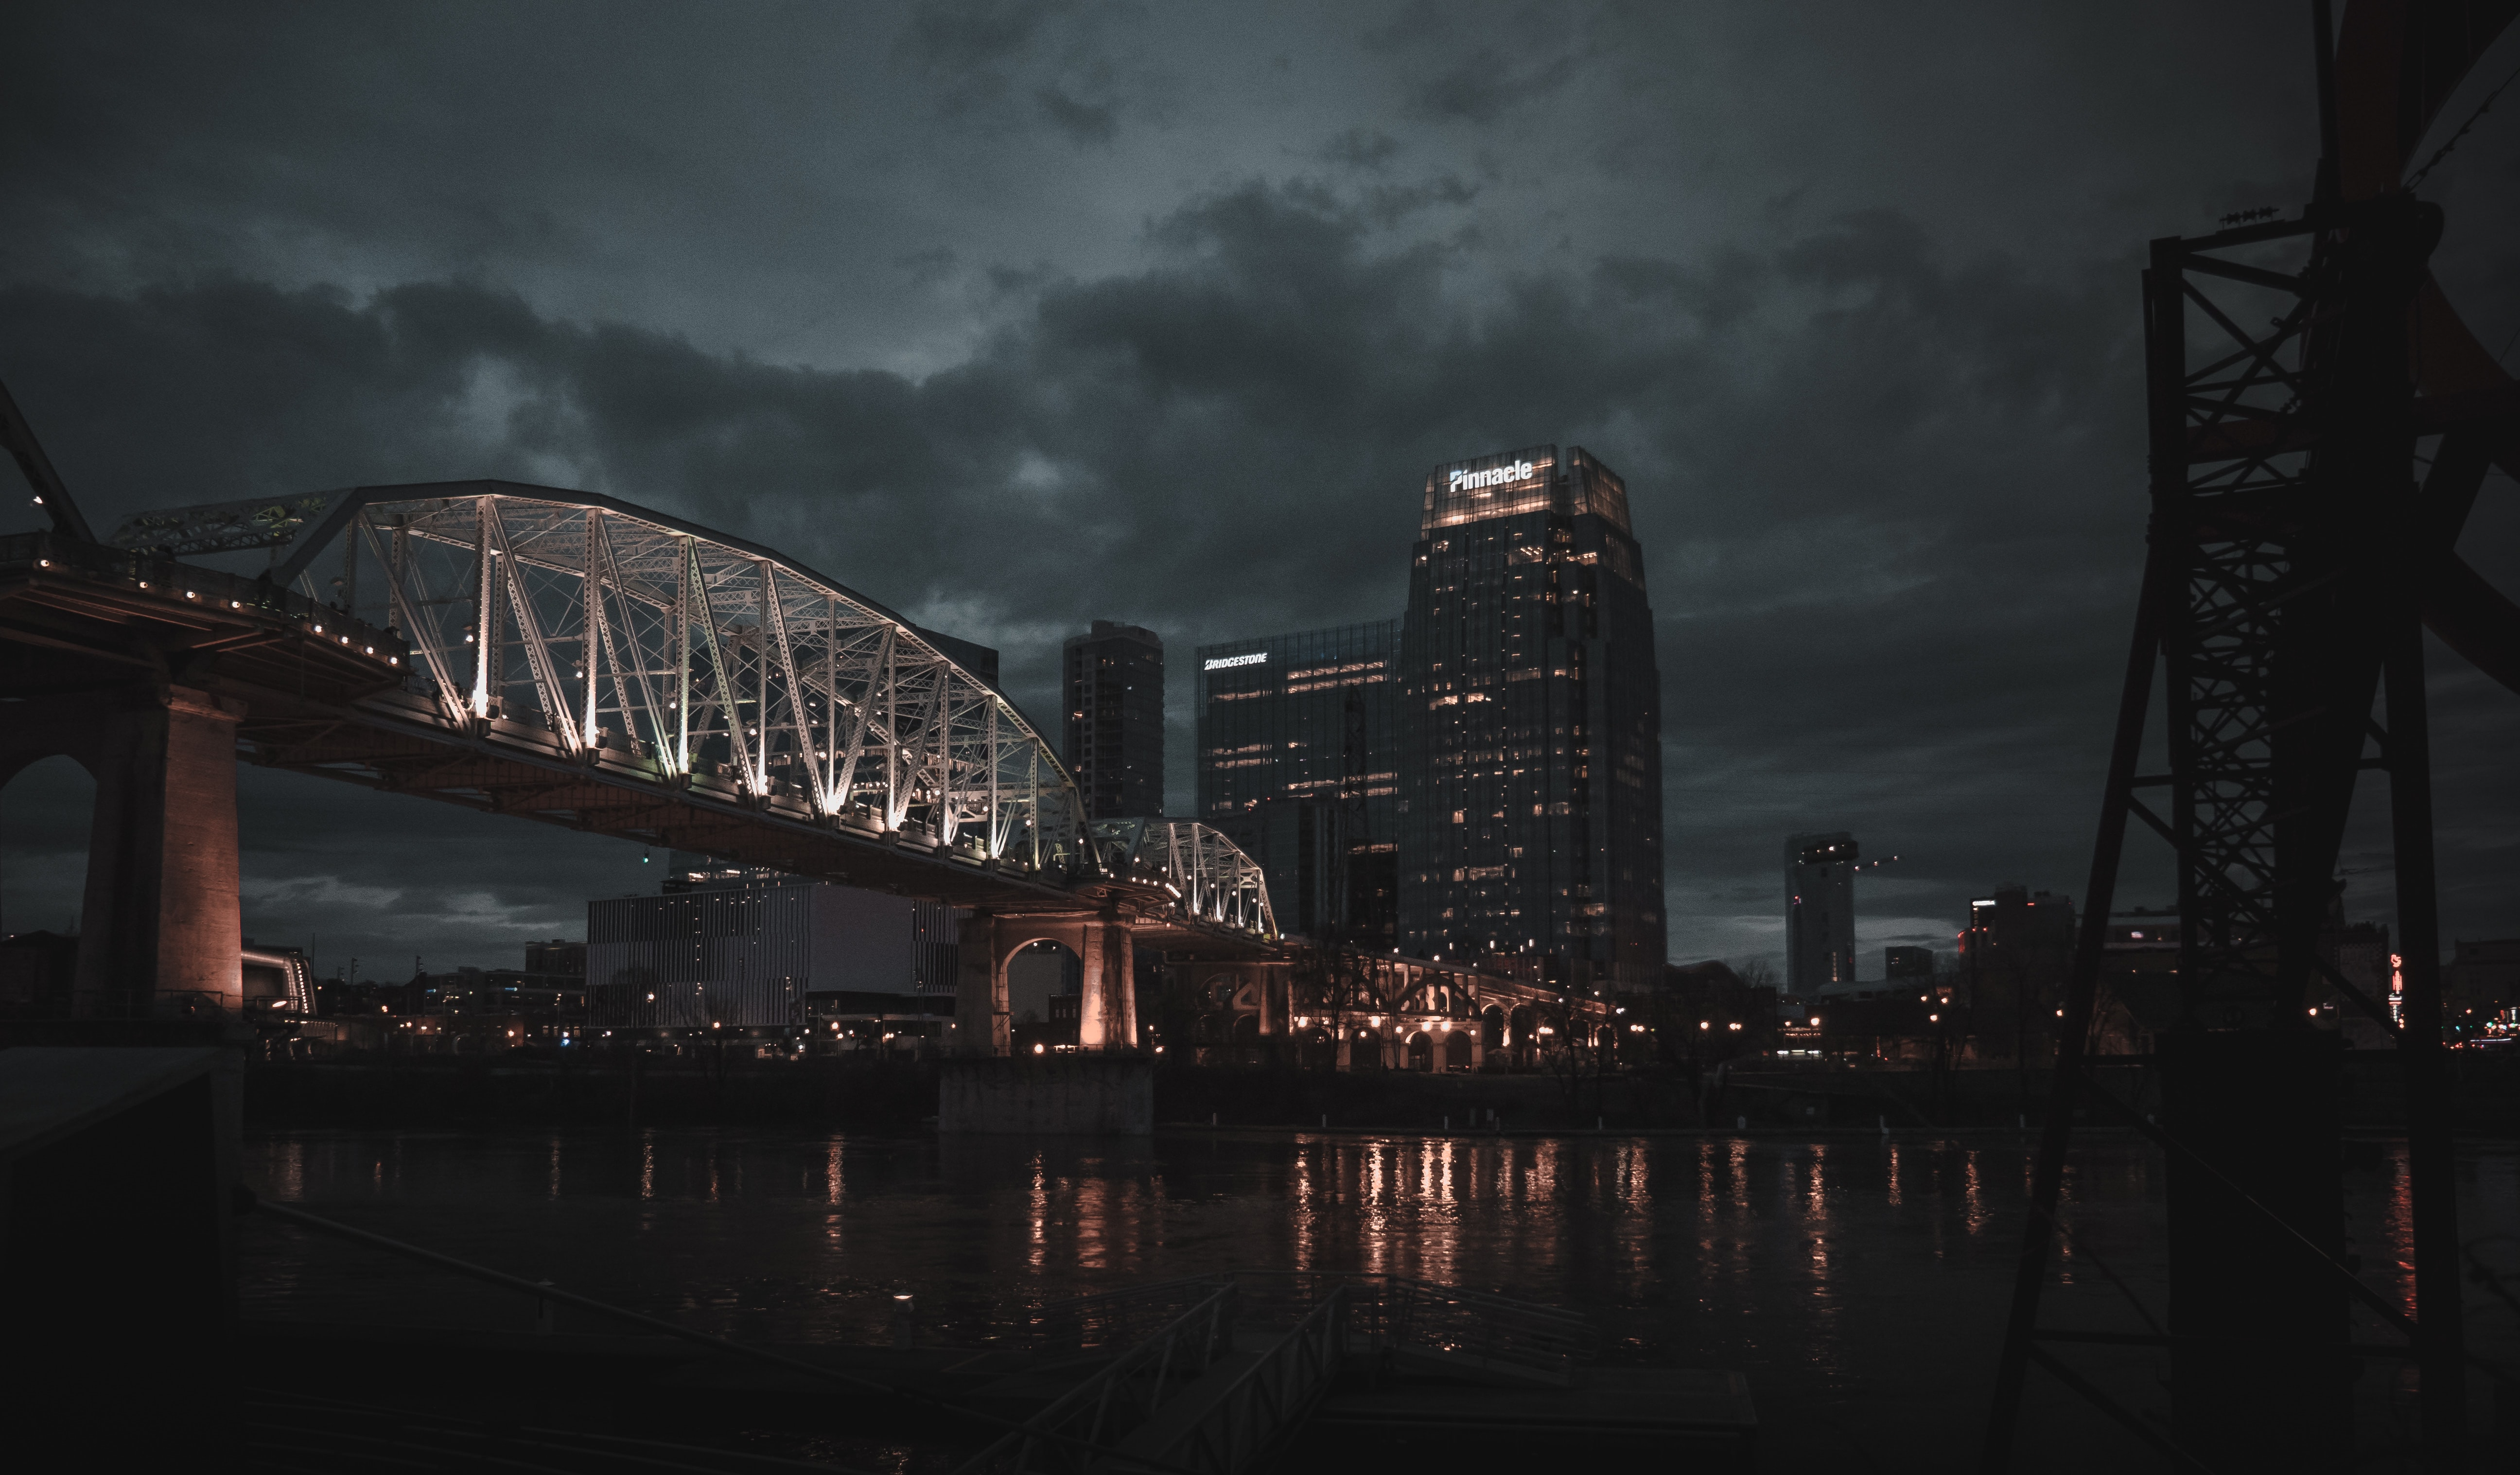 Sample Images for Cityscape Photography Challenge